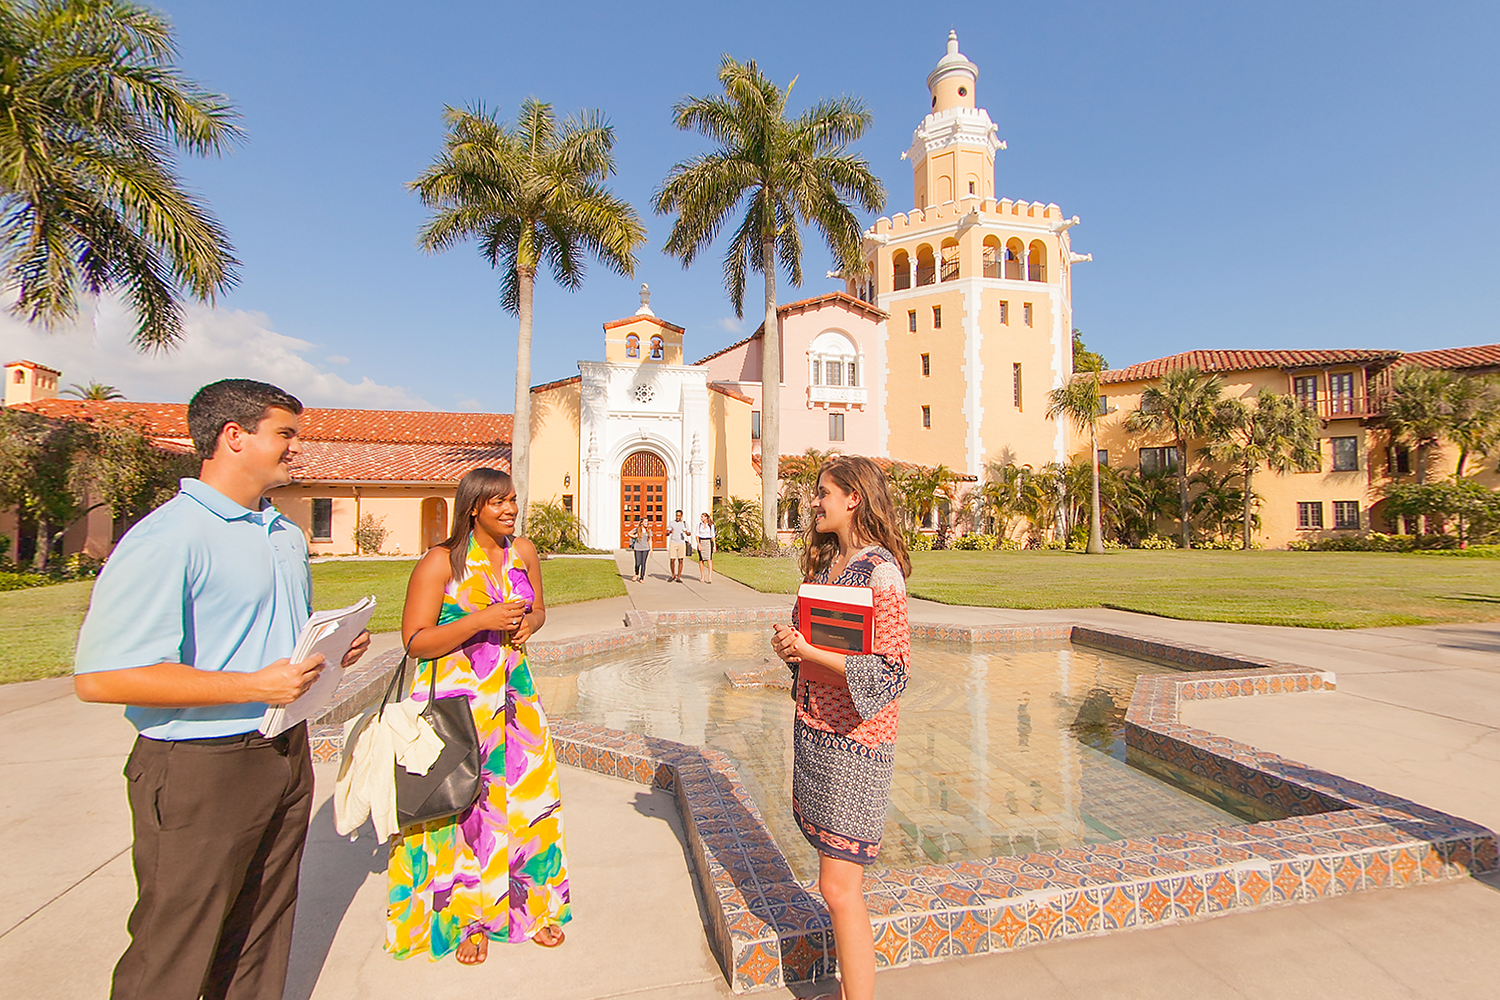 Students at Stetson